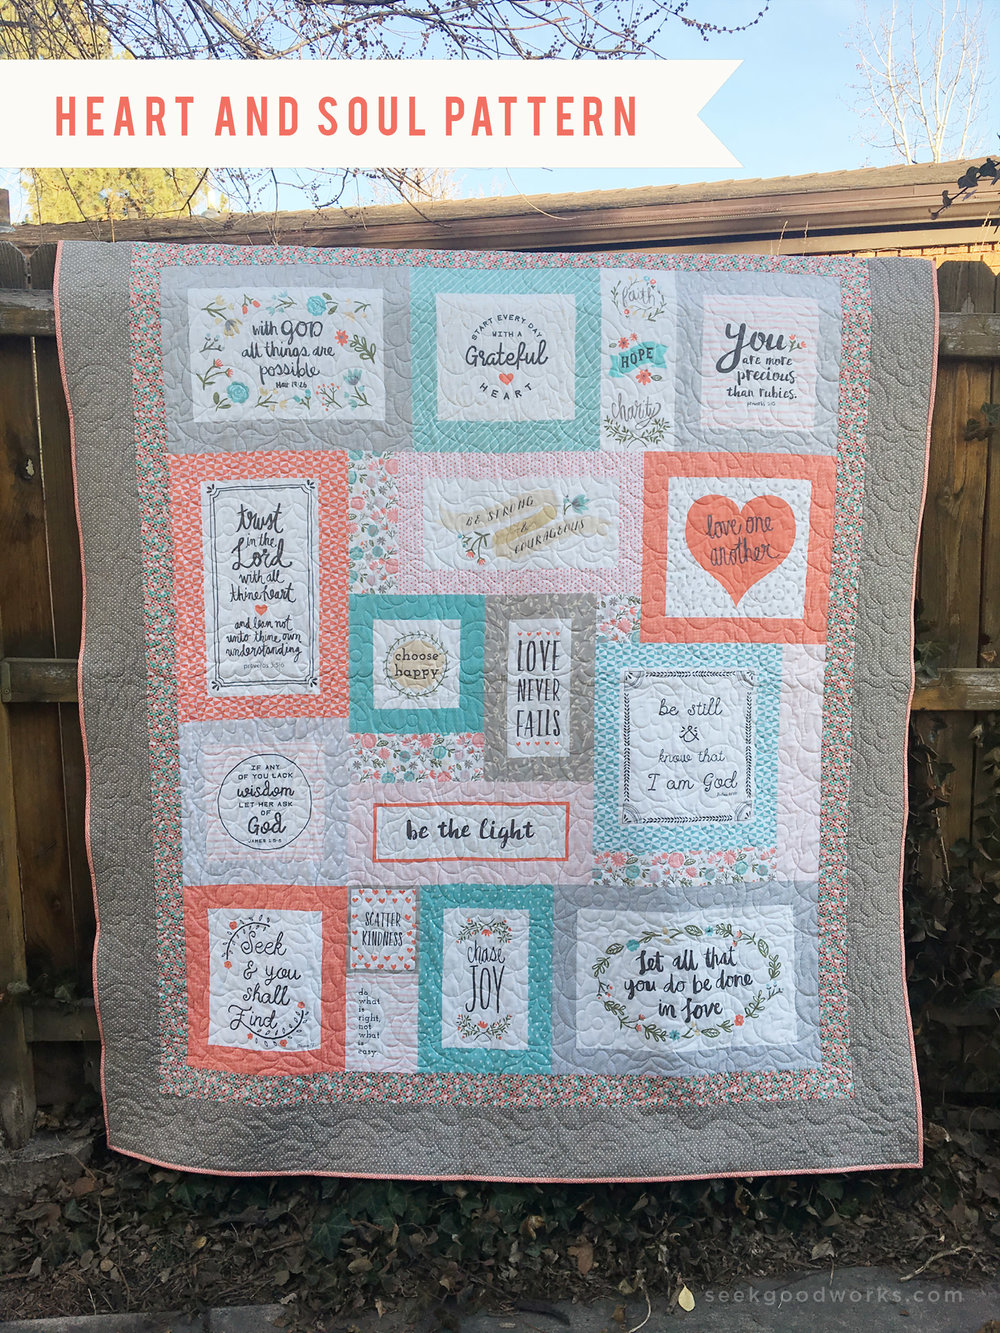 Get your free Heart and Soul pattern download  here